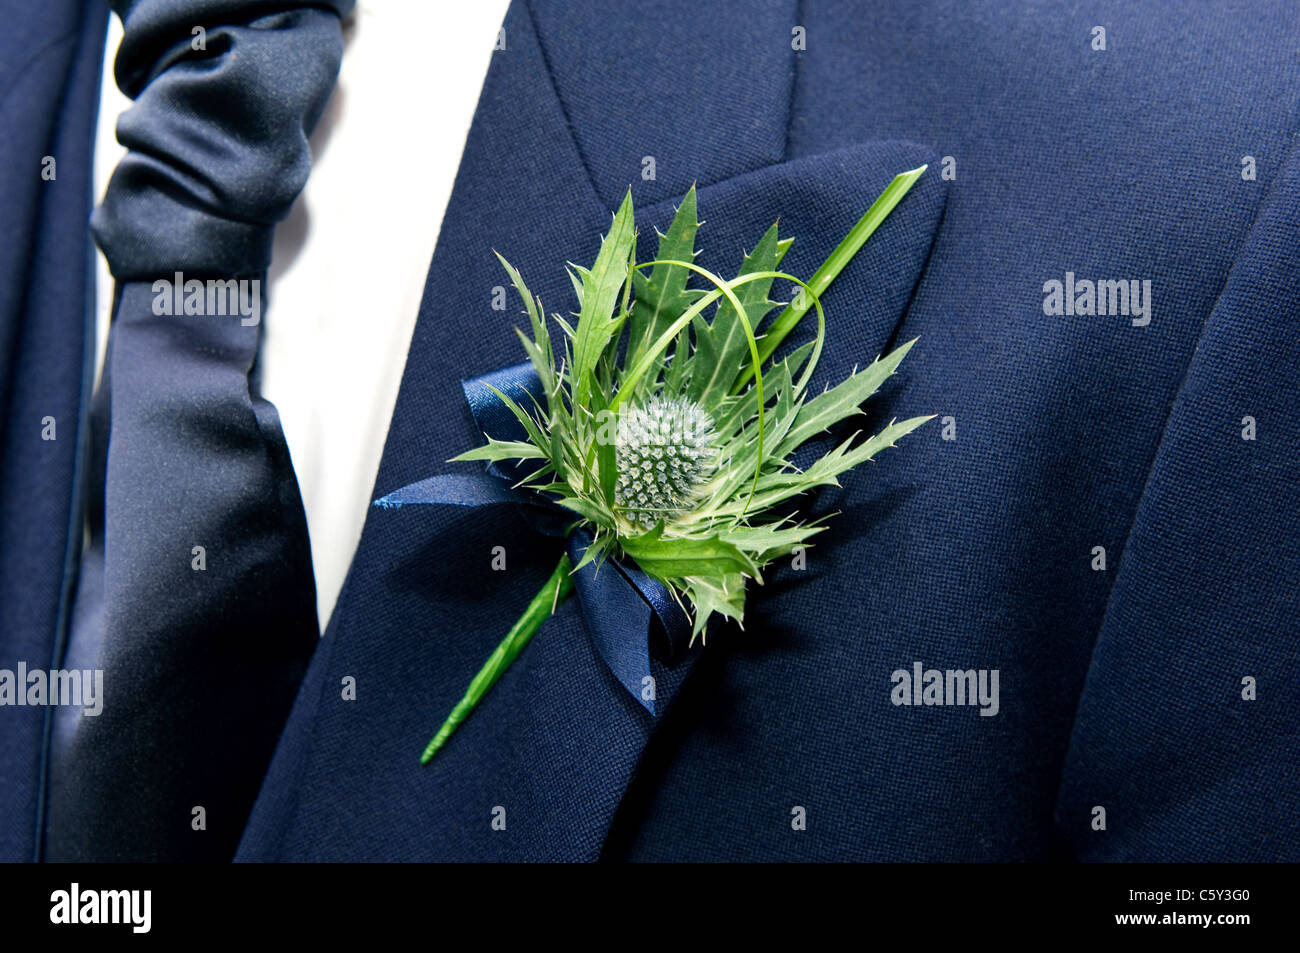 the thistle national emblem of scotland worn as a flower